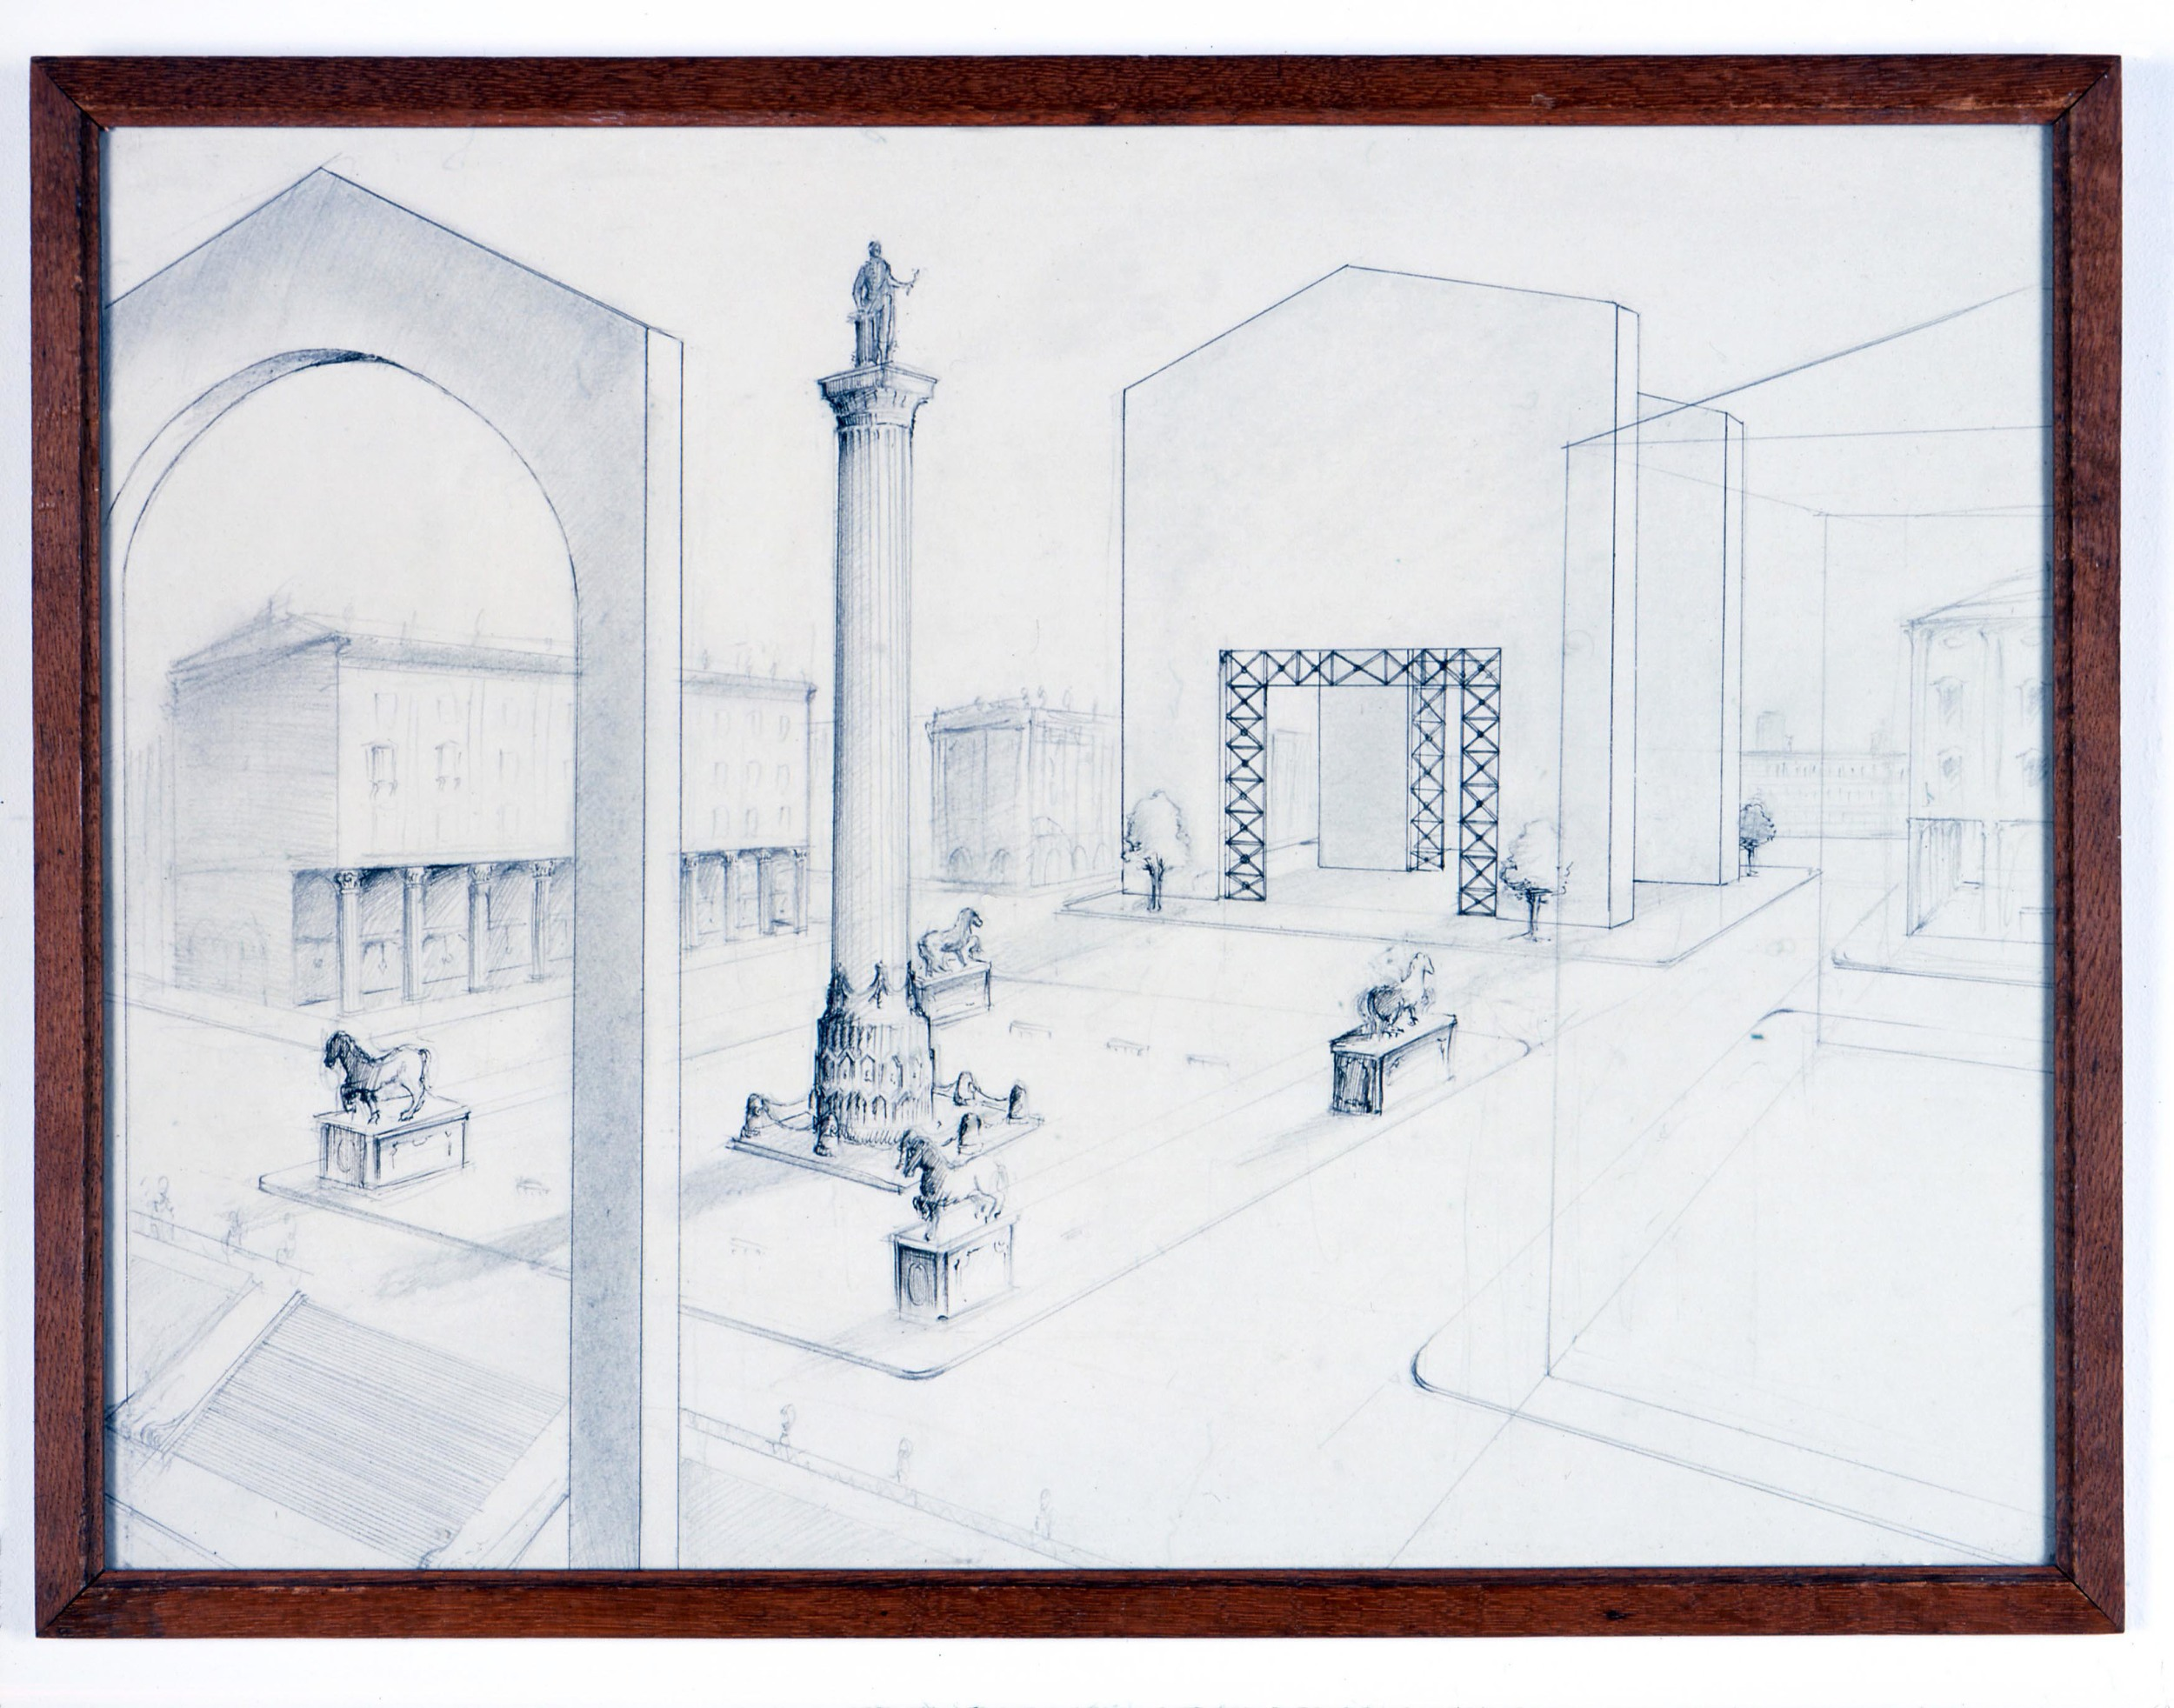 Idealised Piazza Circa 1980 2006 ink & pencil on paper with artists frame 41.5cm x 54cm